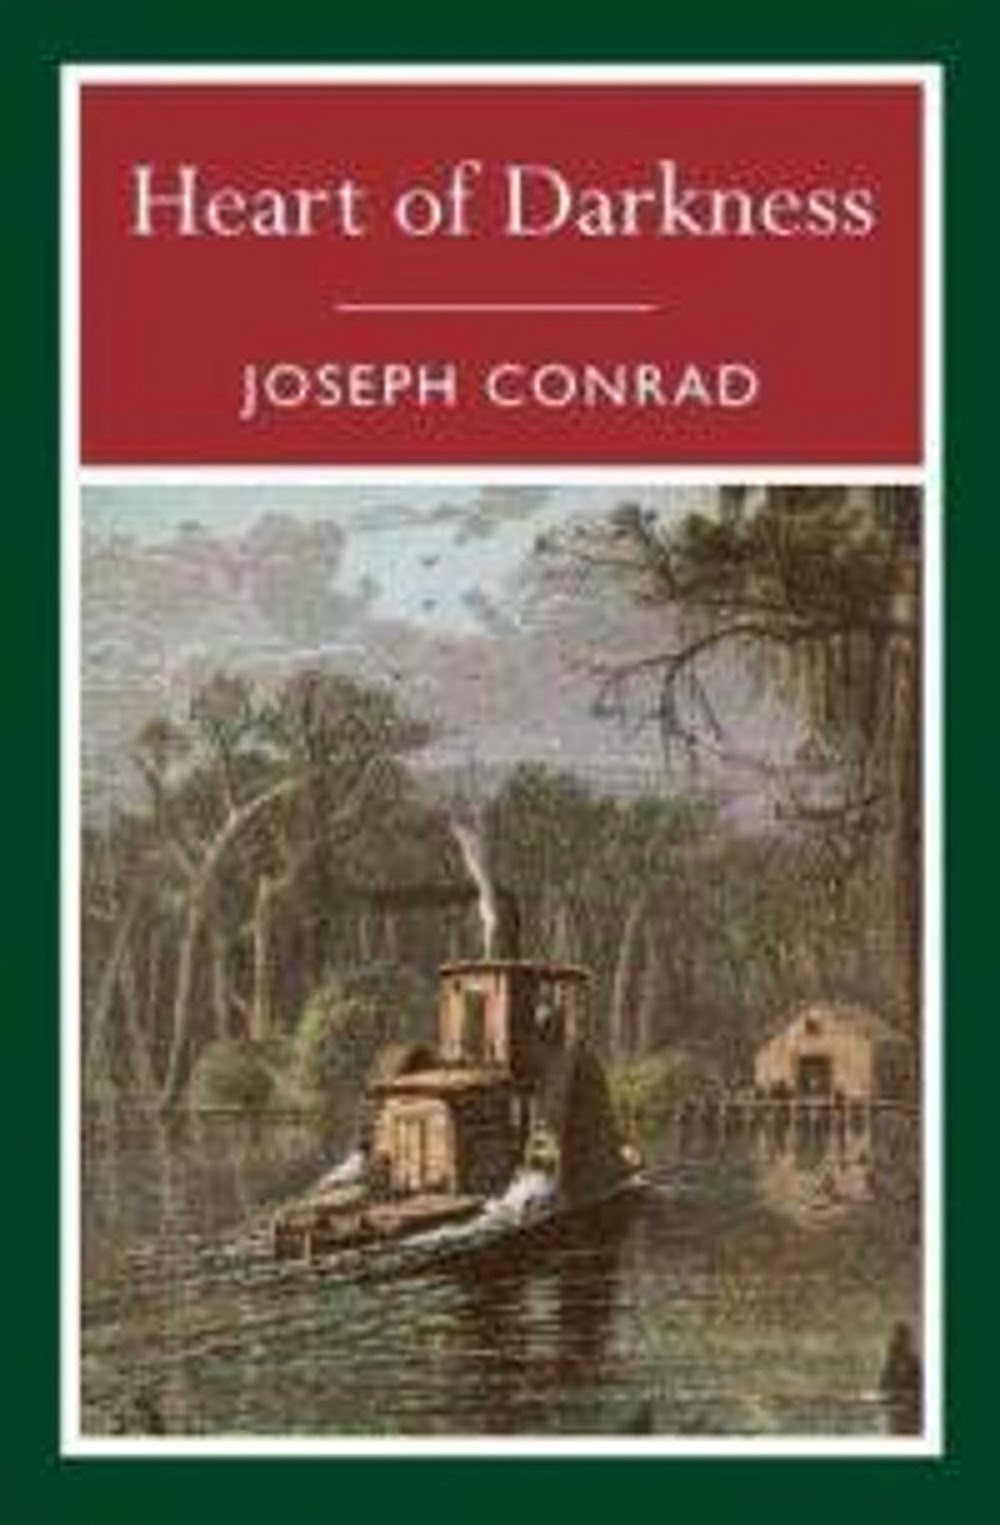 heart of darkness joseph conrad book report Book review sheet title: heart of darkness author: joseph conrad main  characters: ○ narrator - unnamed ○ marlow - skeptical educated narrator ○  kurtz.